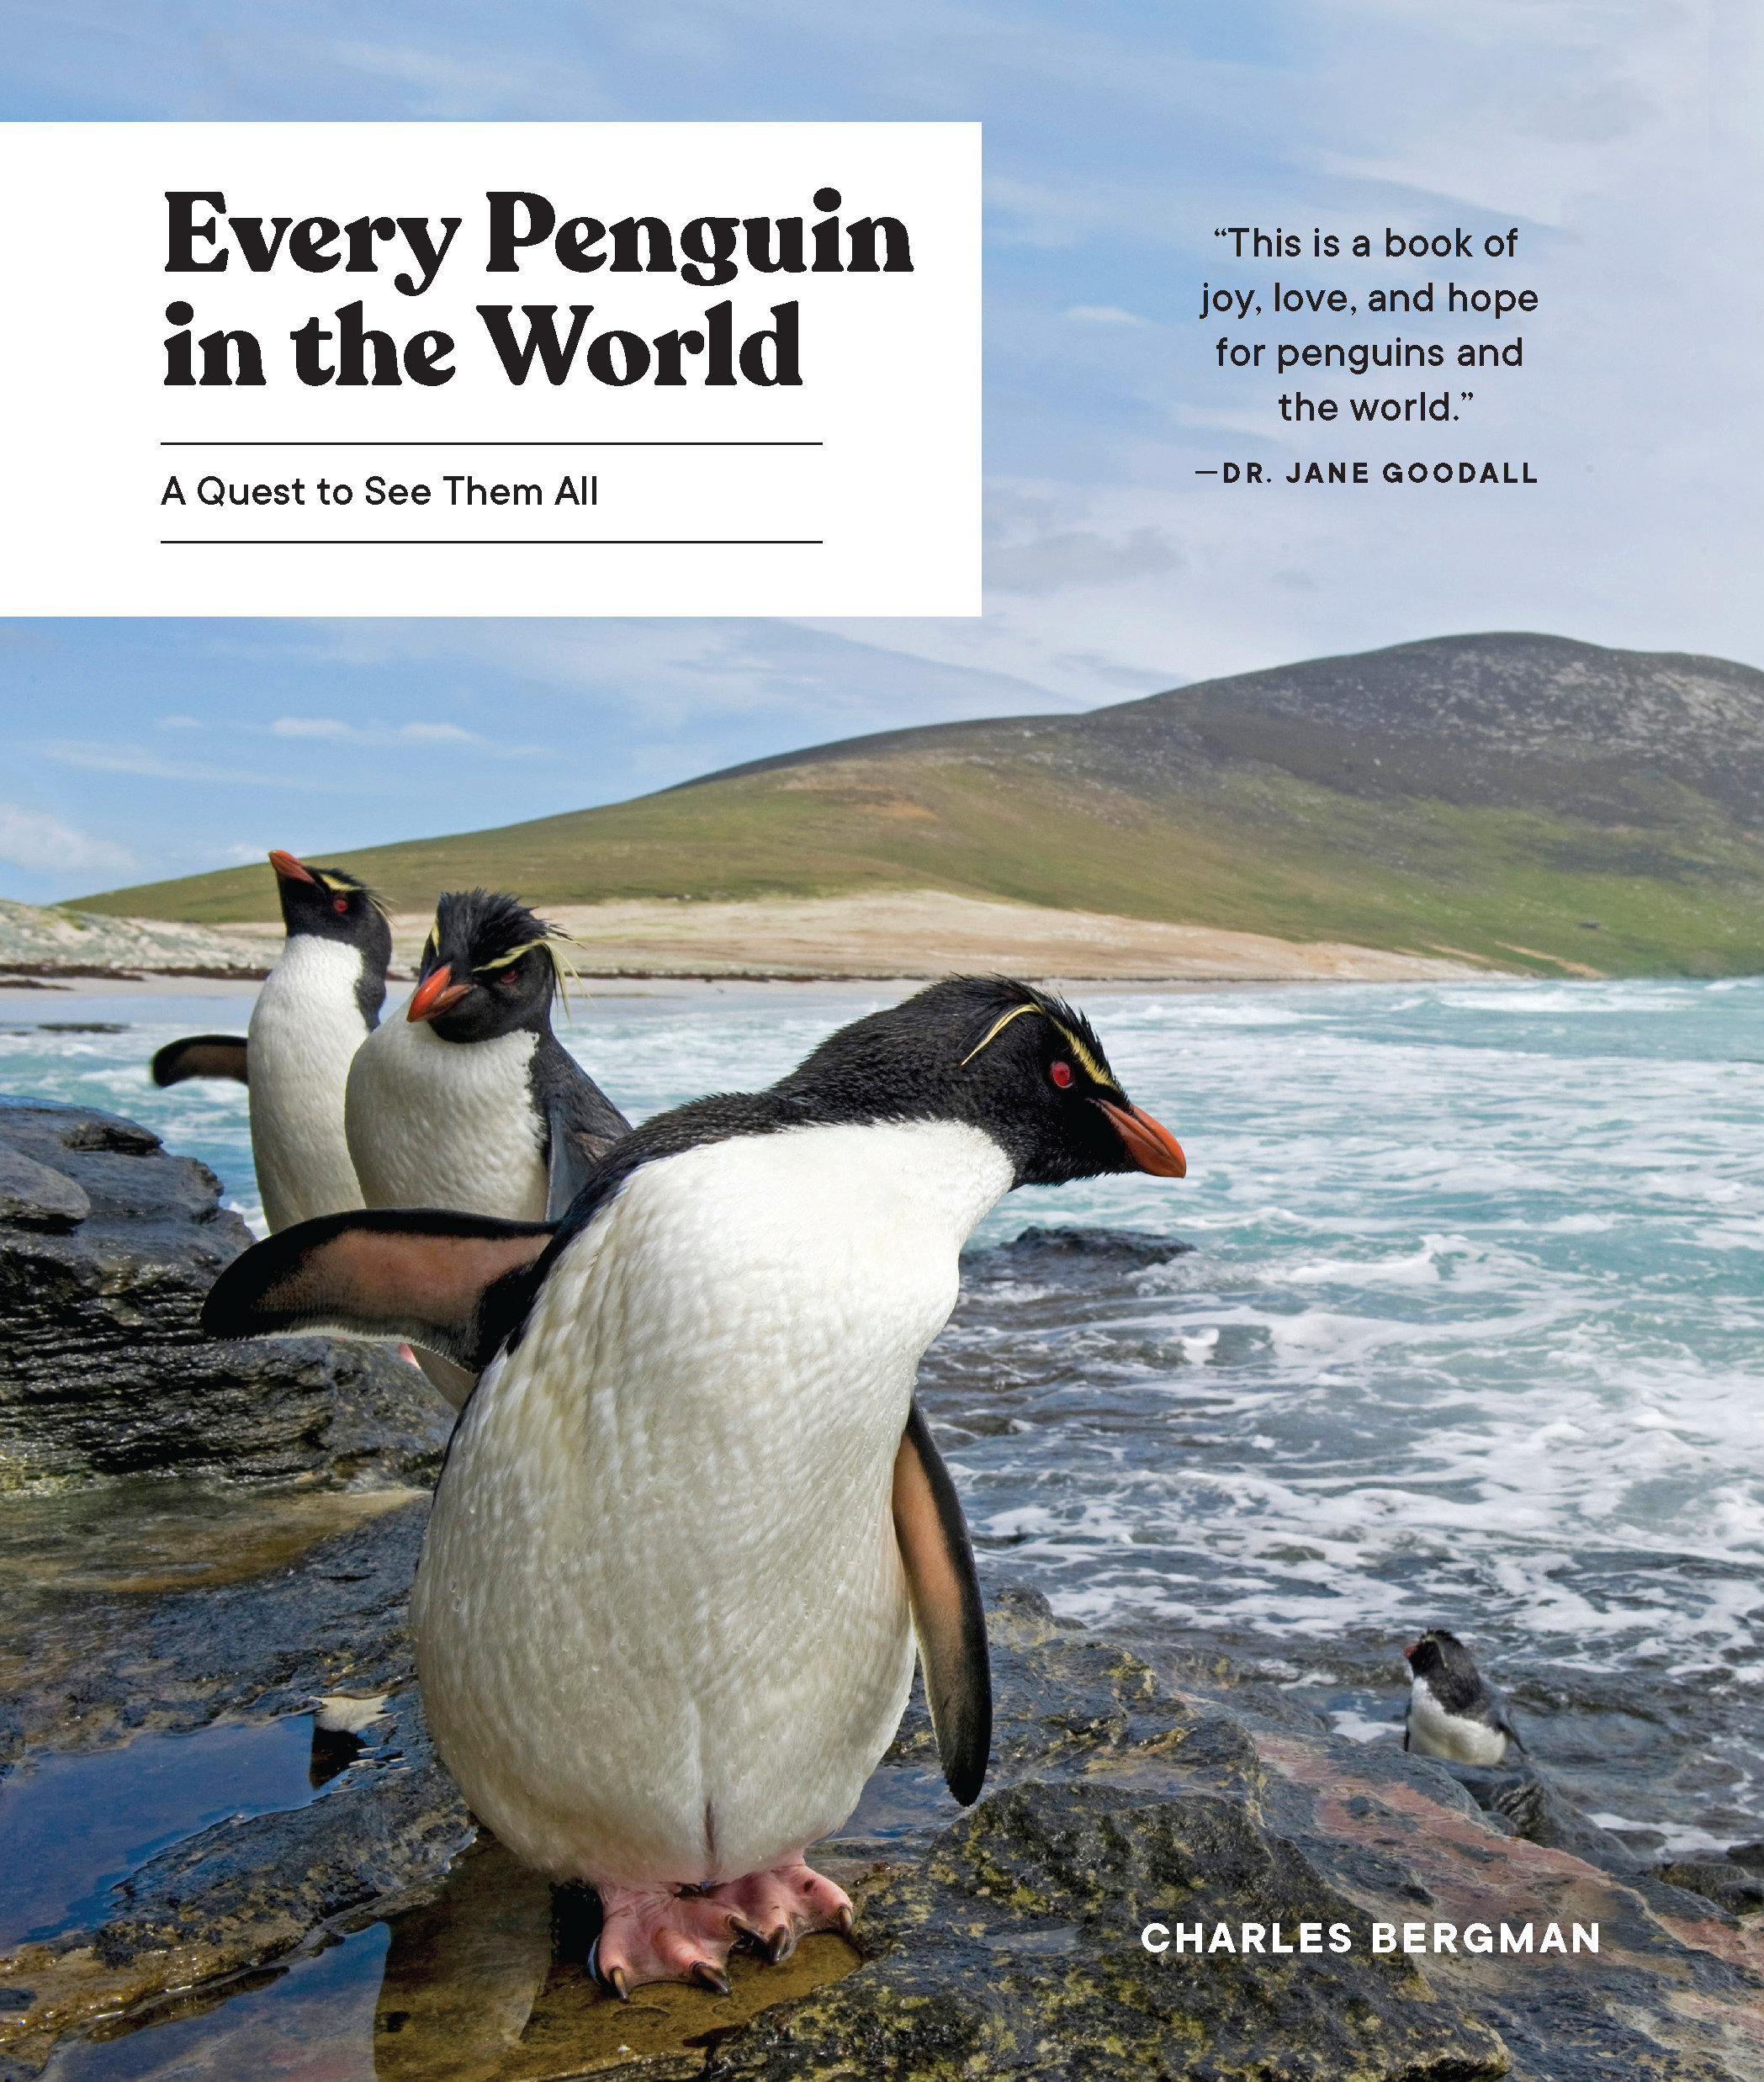 Every Penguin in the World [electronic resource] : A Quest to See Them All